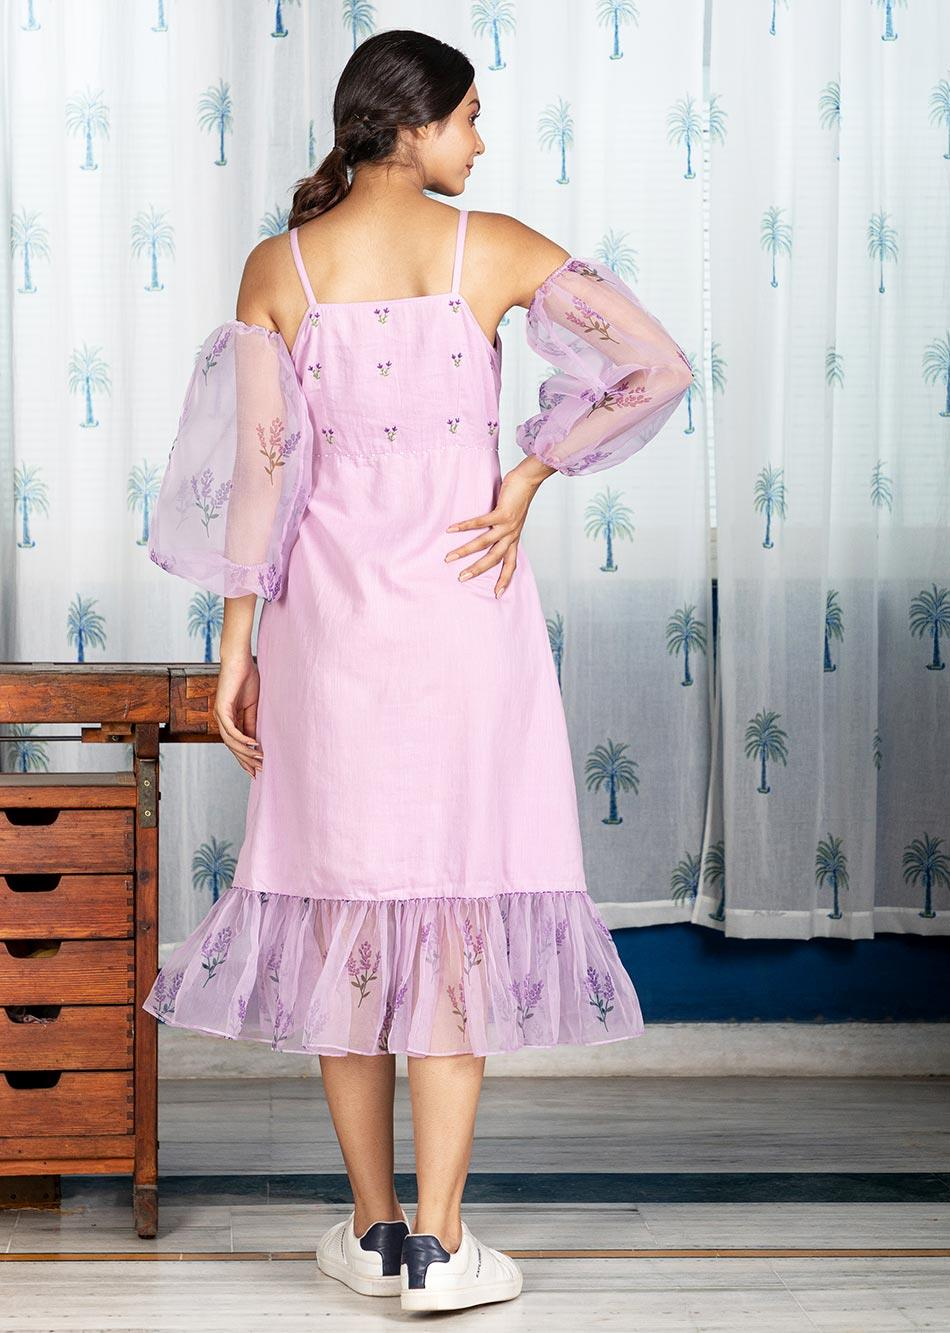 LUXE LILAC DRESS (WITH DETACHABLE SLEEVES) By Jovi Fashion